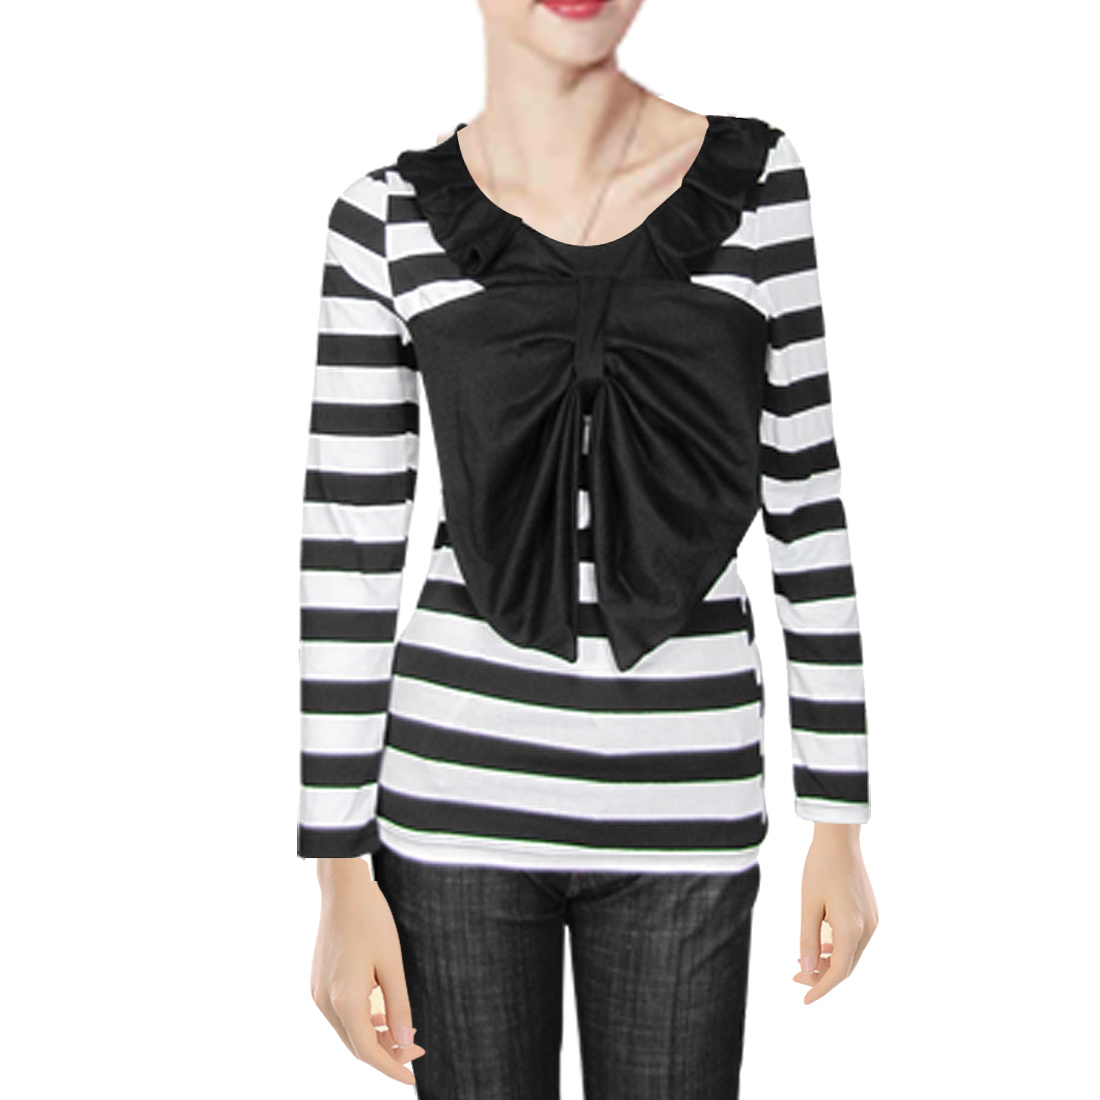 Ladies Black White Striped Bowknot Scoop Neck Autumn Shirt